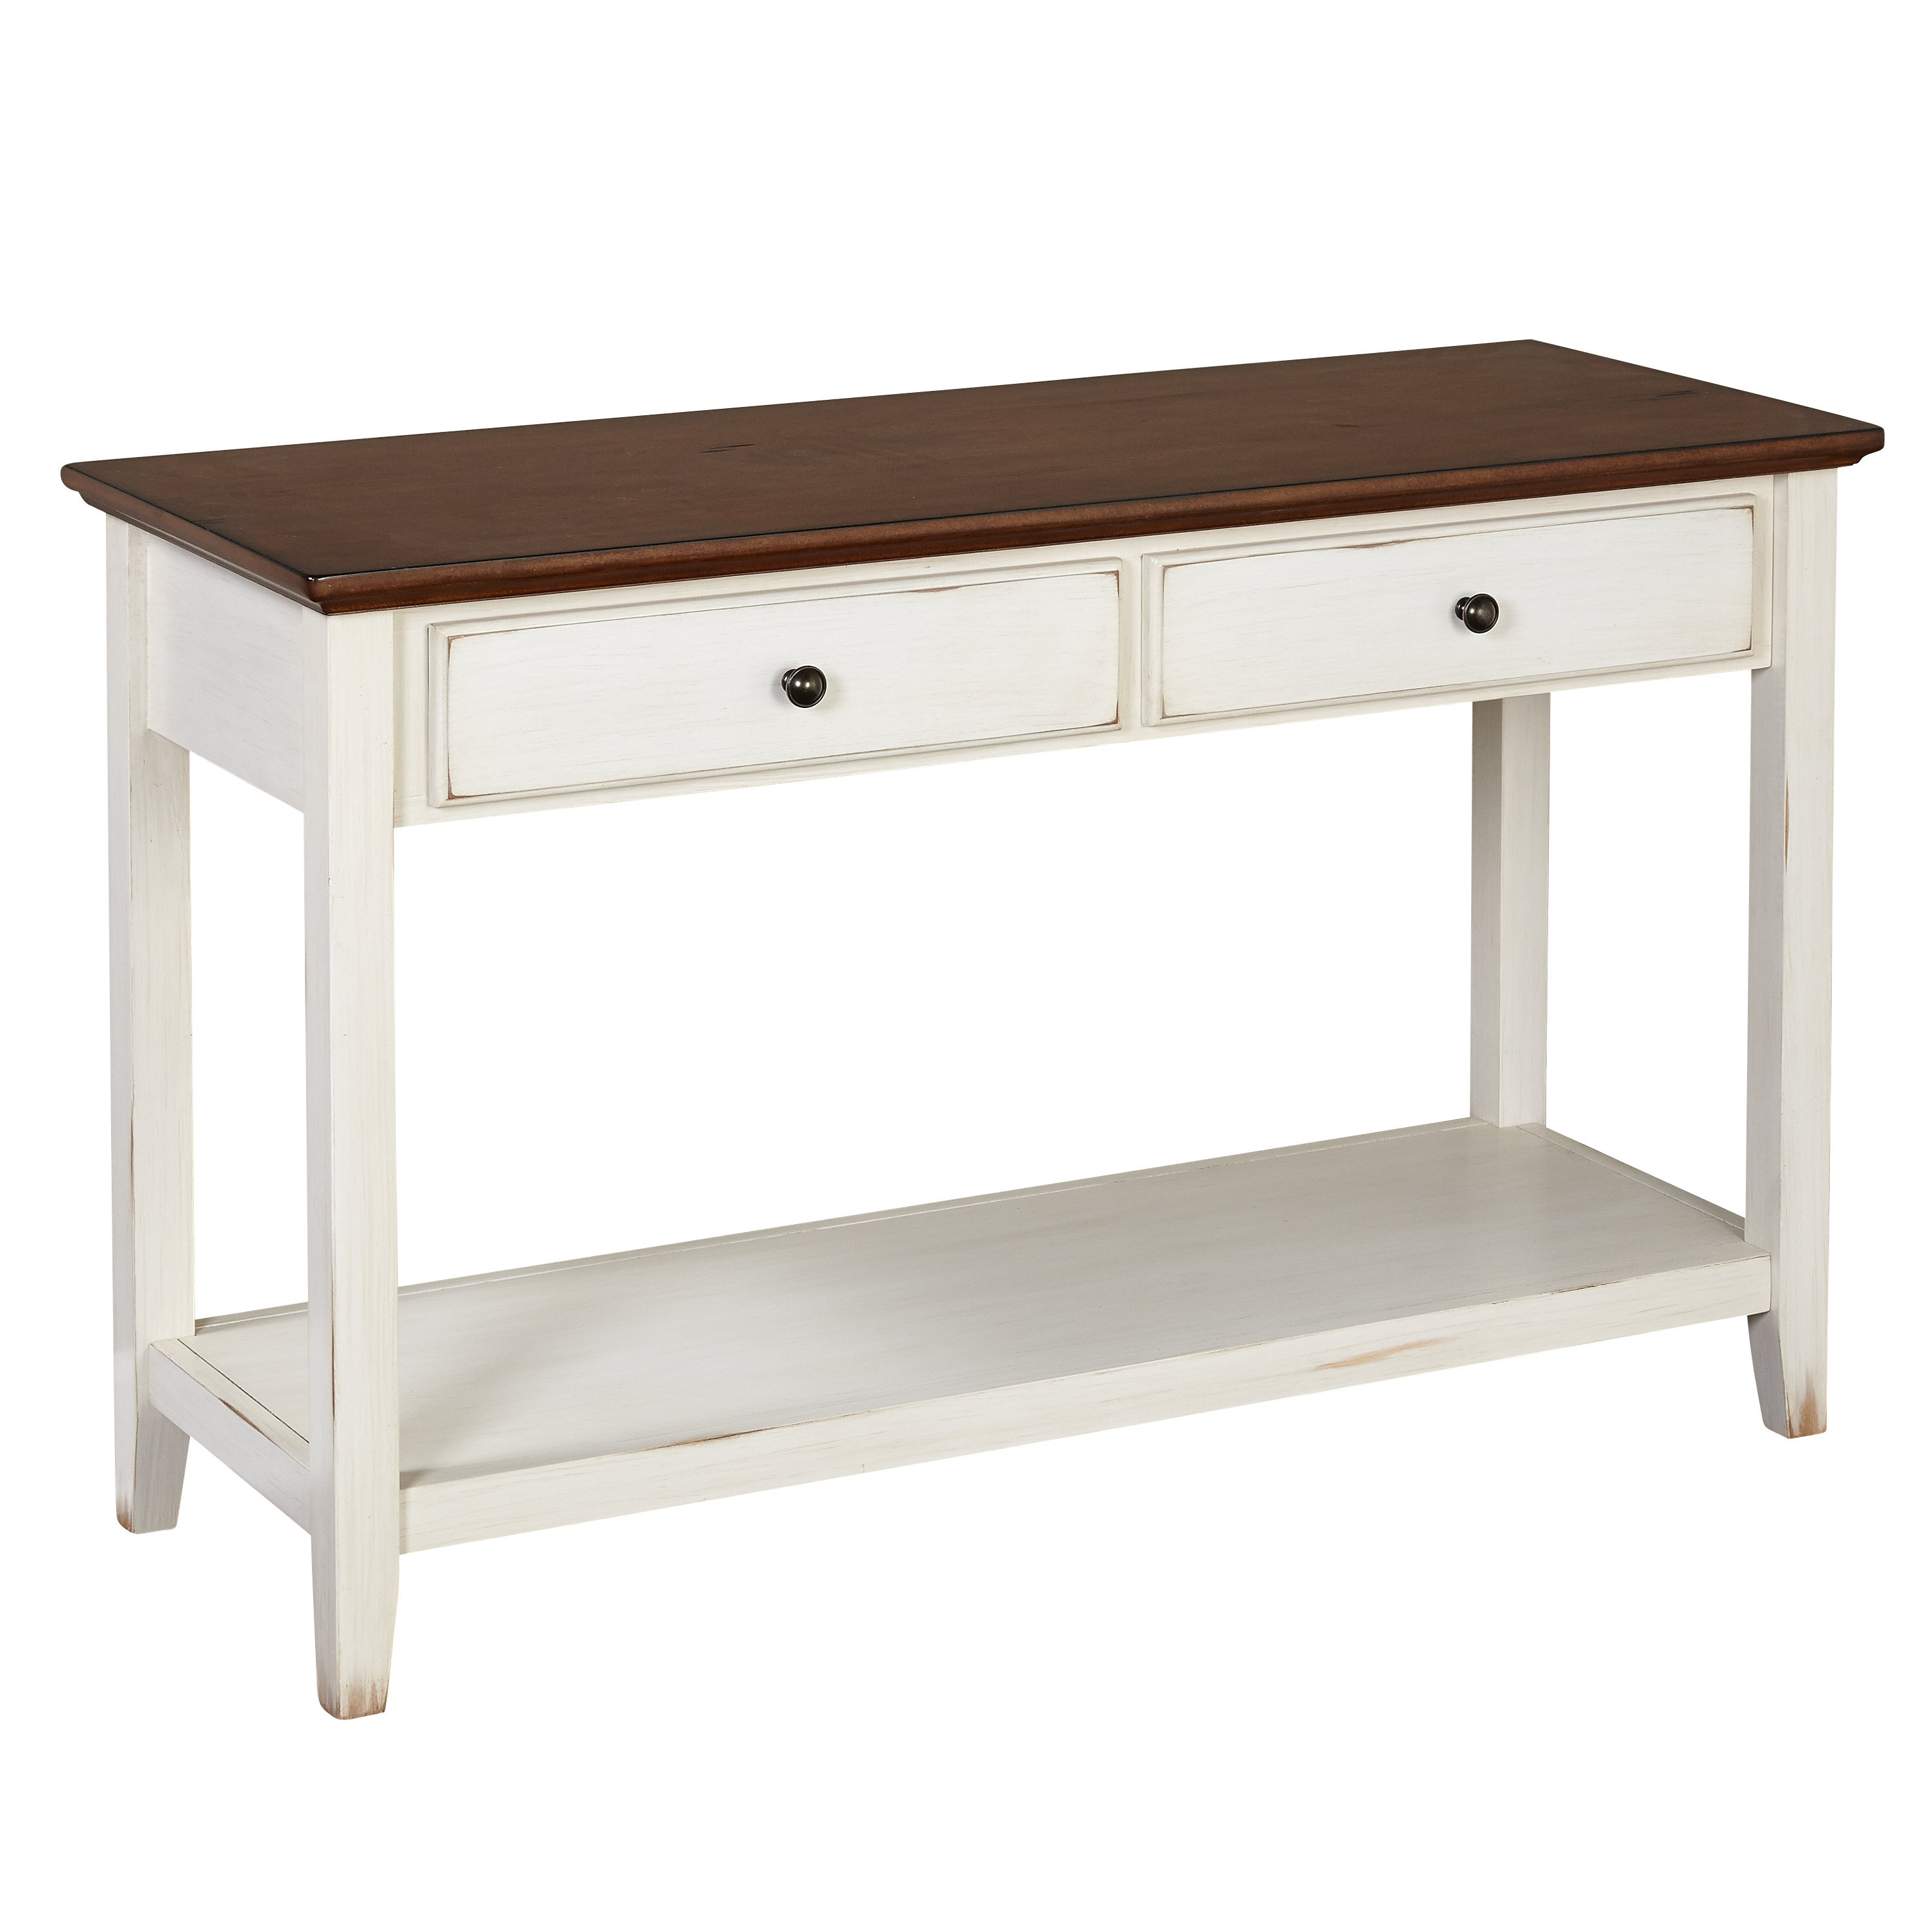 Joss & Main Pertaining To Most Popular Antique White Distressed Console Tables (View 9 of 20)